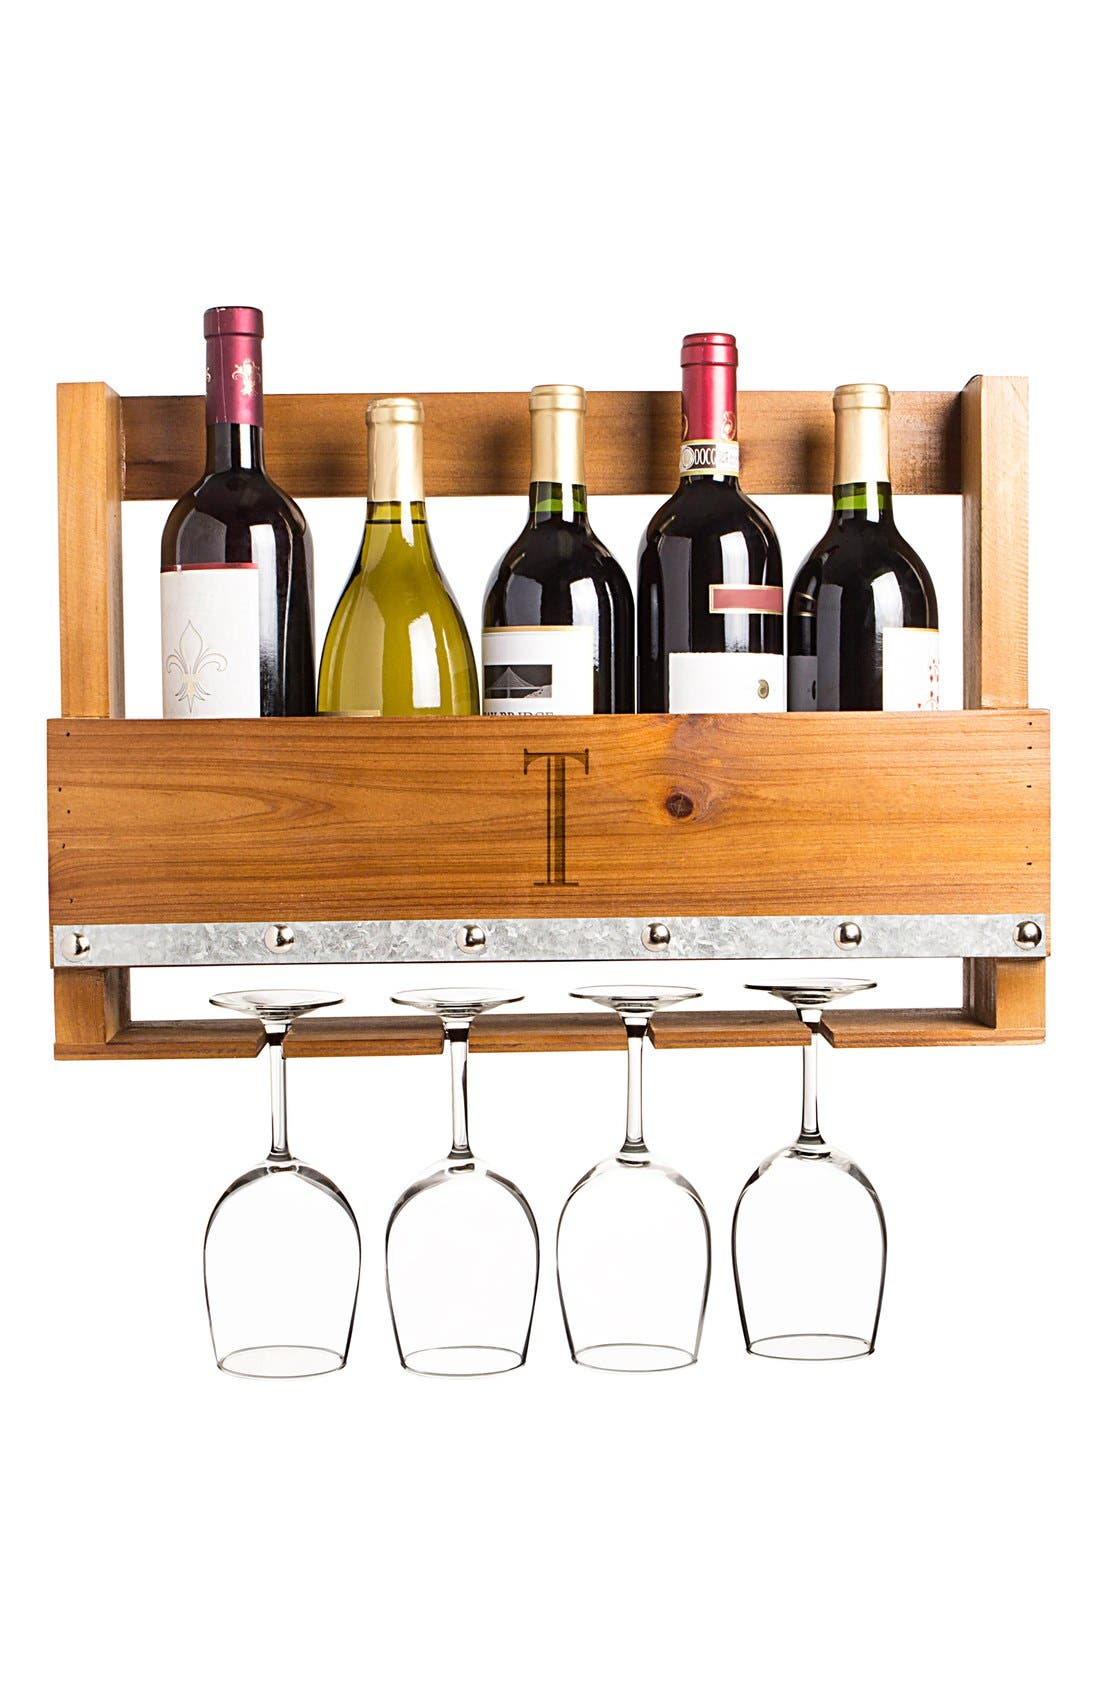 Main Image - Cathy's Concepts Personalized Rustic Wall Wine Rack & Glass Holder